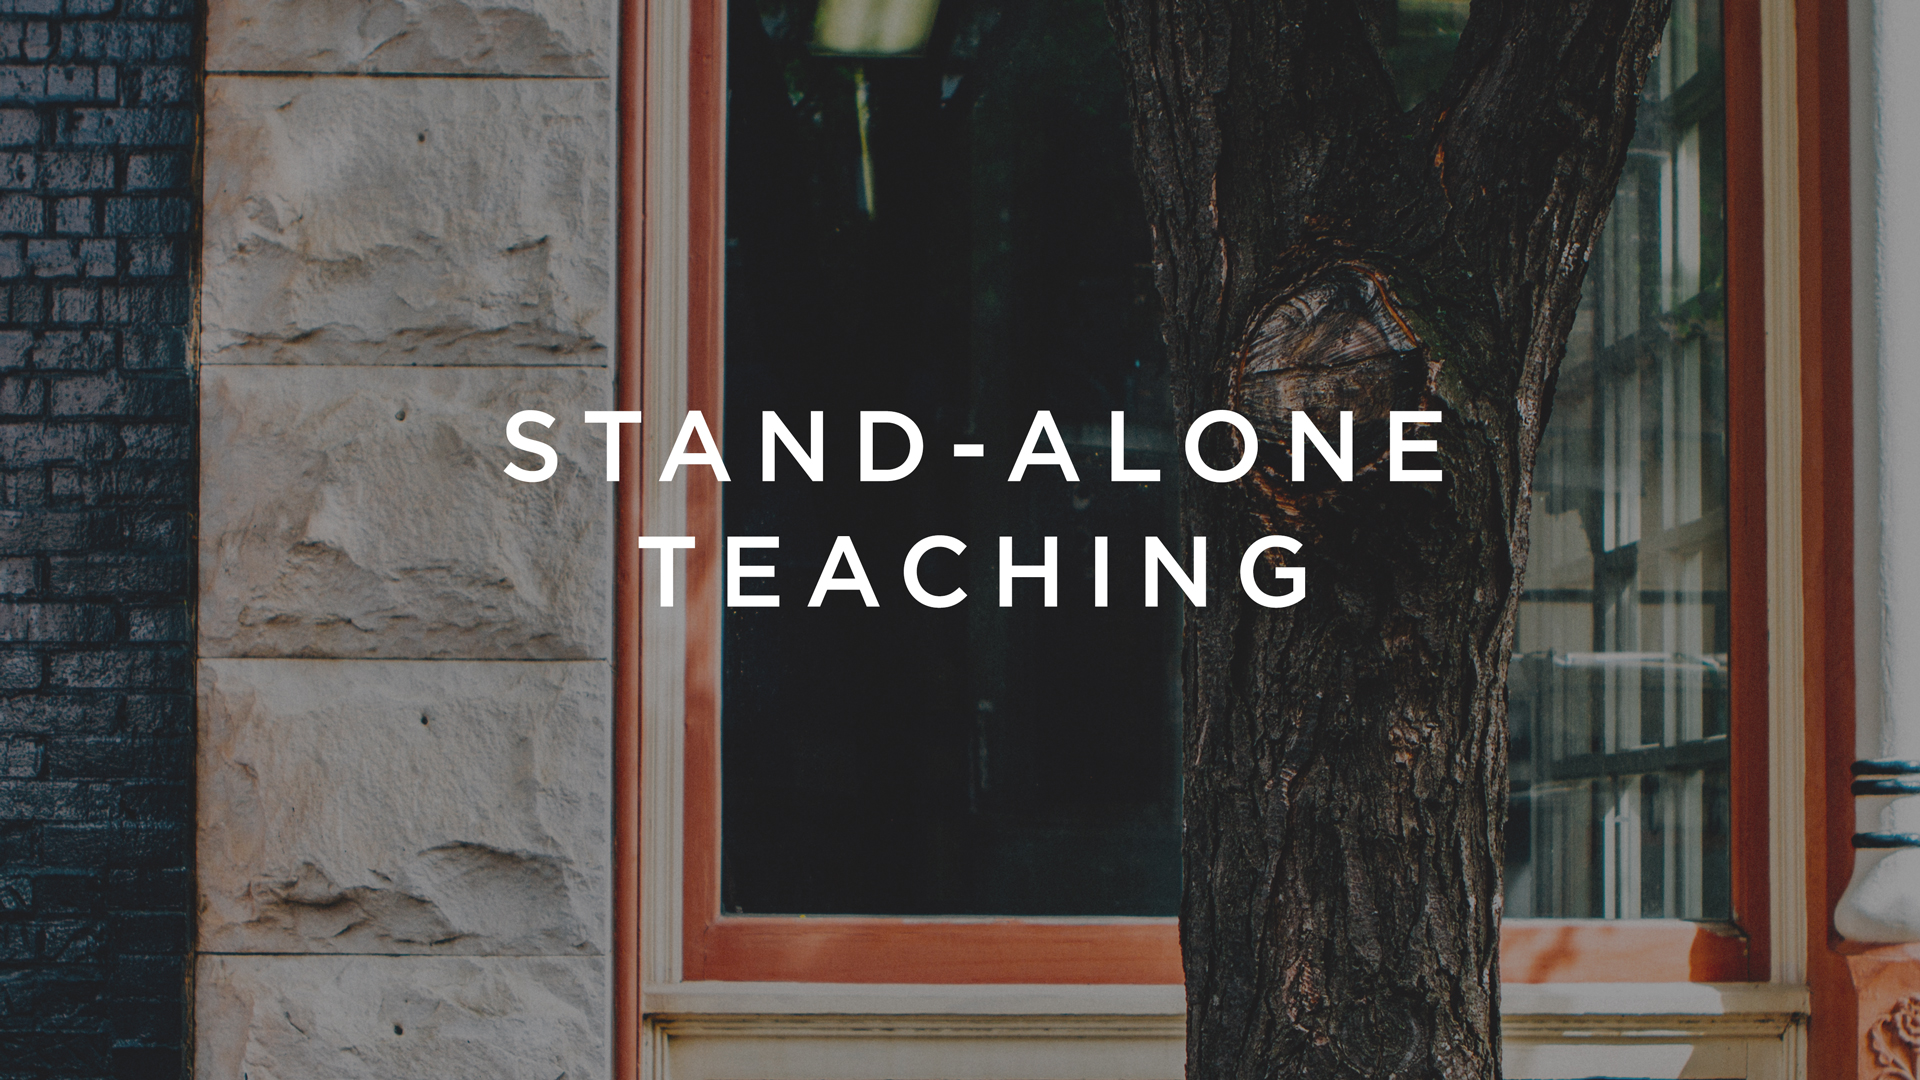 STAND-ALONE-TEACHING-BANNER.jpg